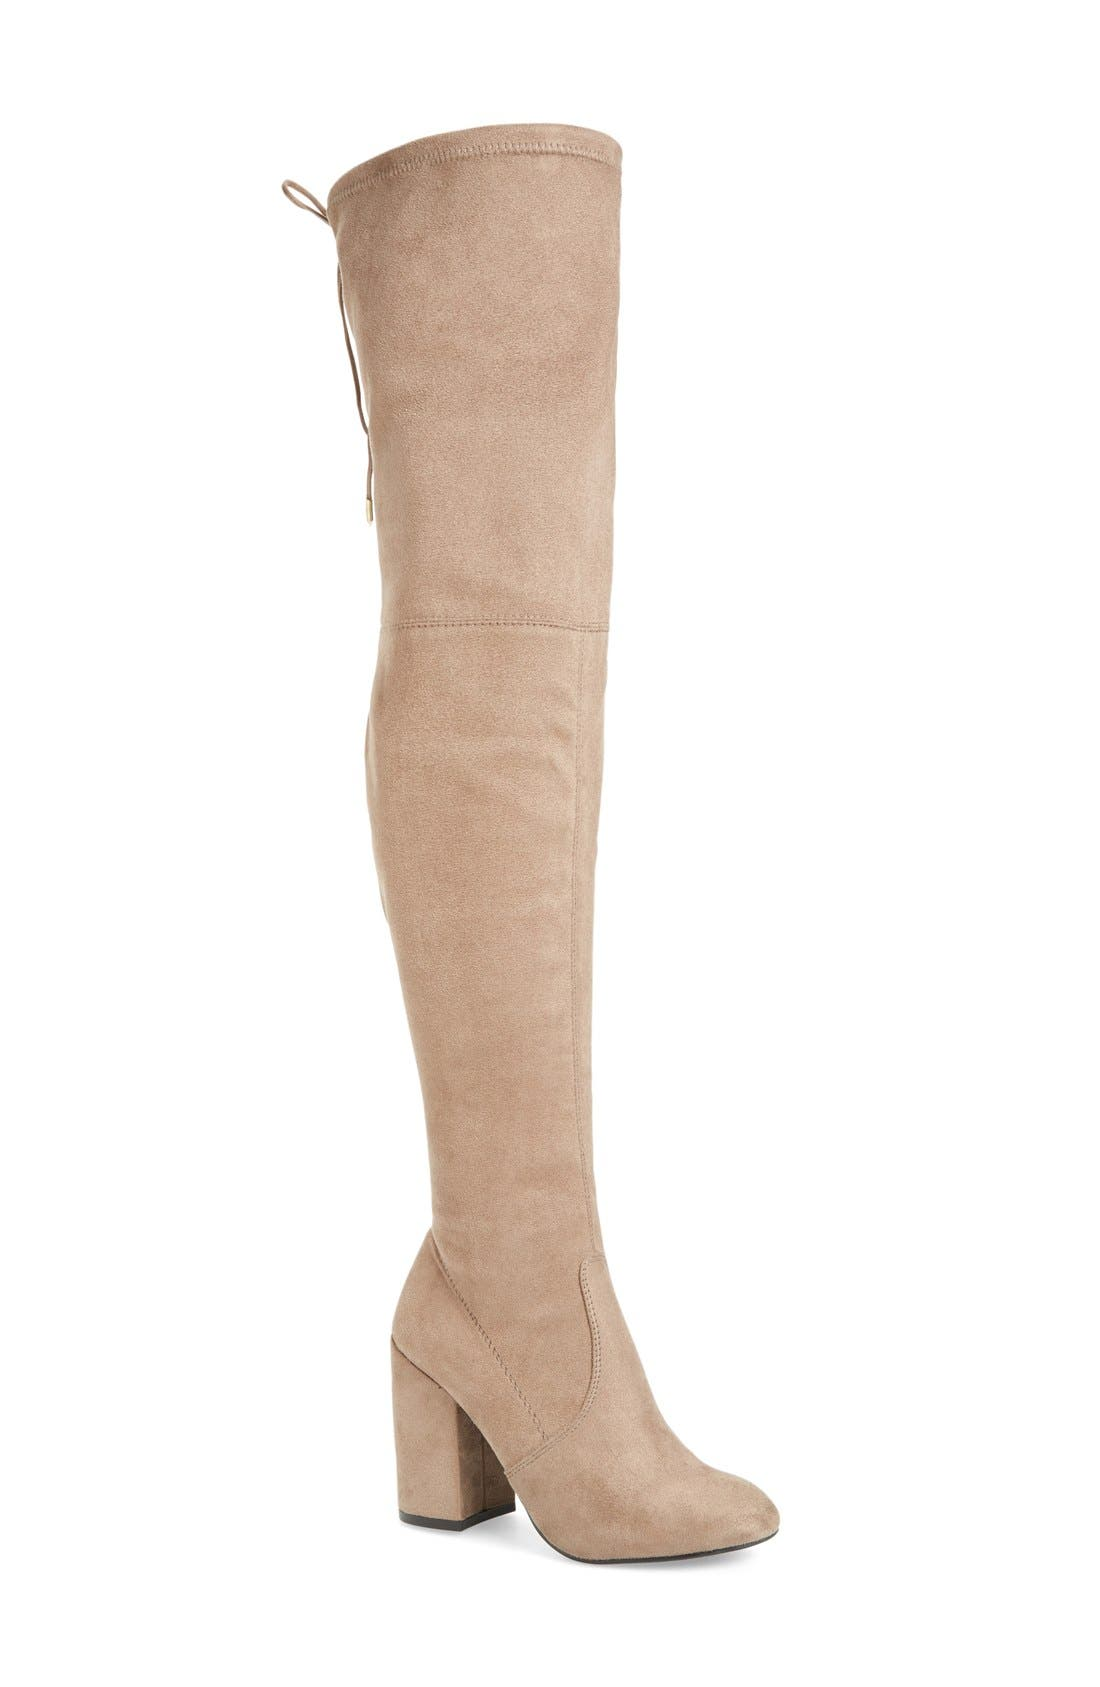 Norri Over the Knee Boot,                             Main thumbnail 1, color,                             Taupe